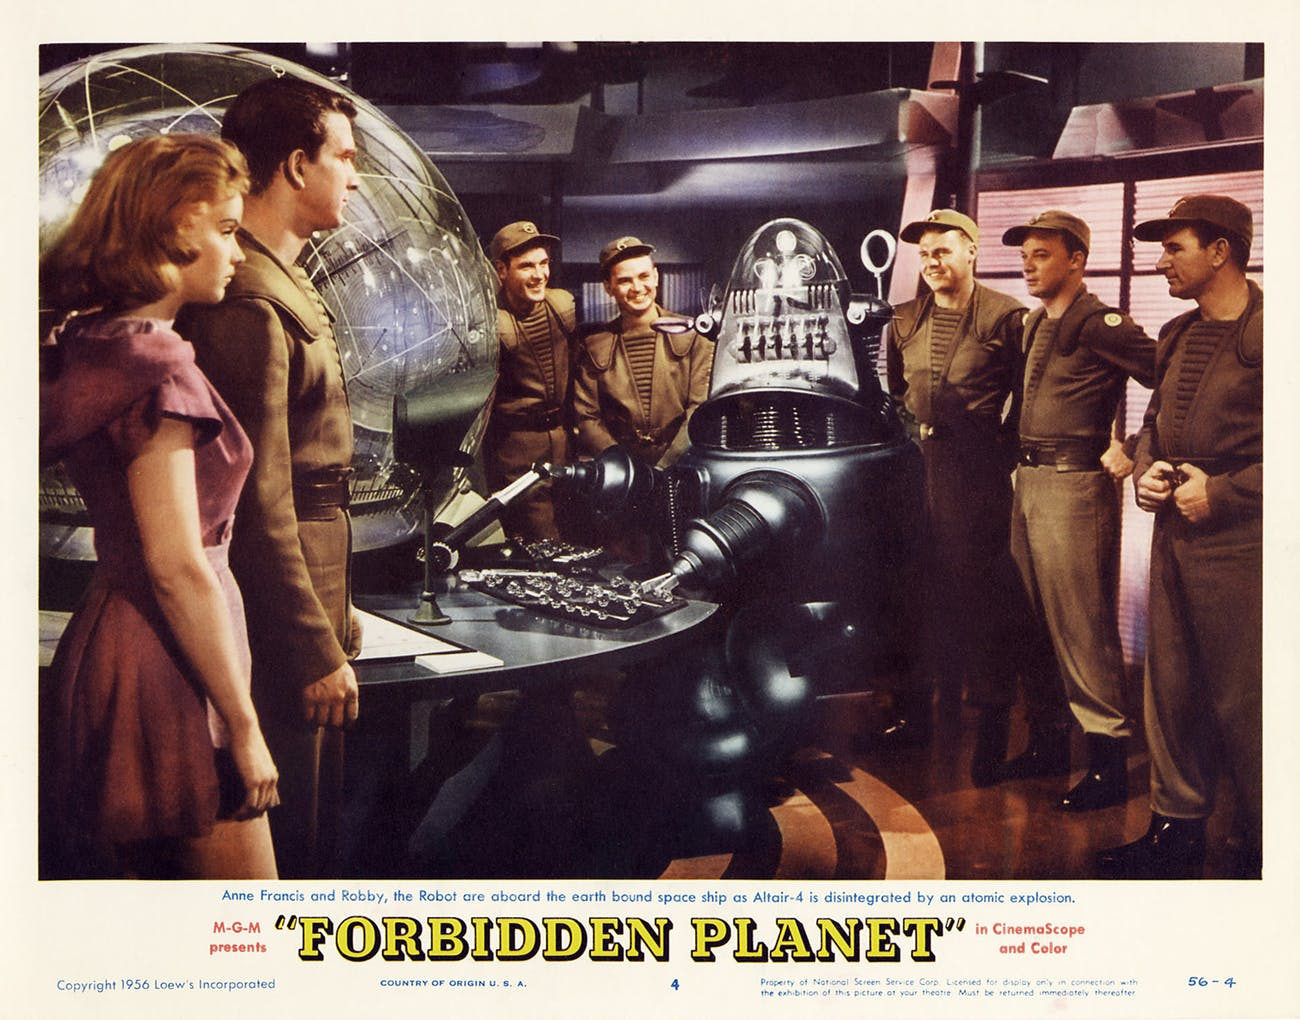 In 'Forbidden Planet', the robot is the real hero.